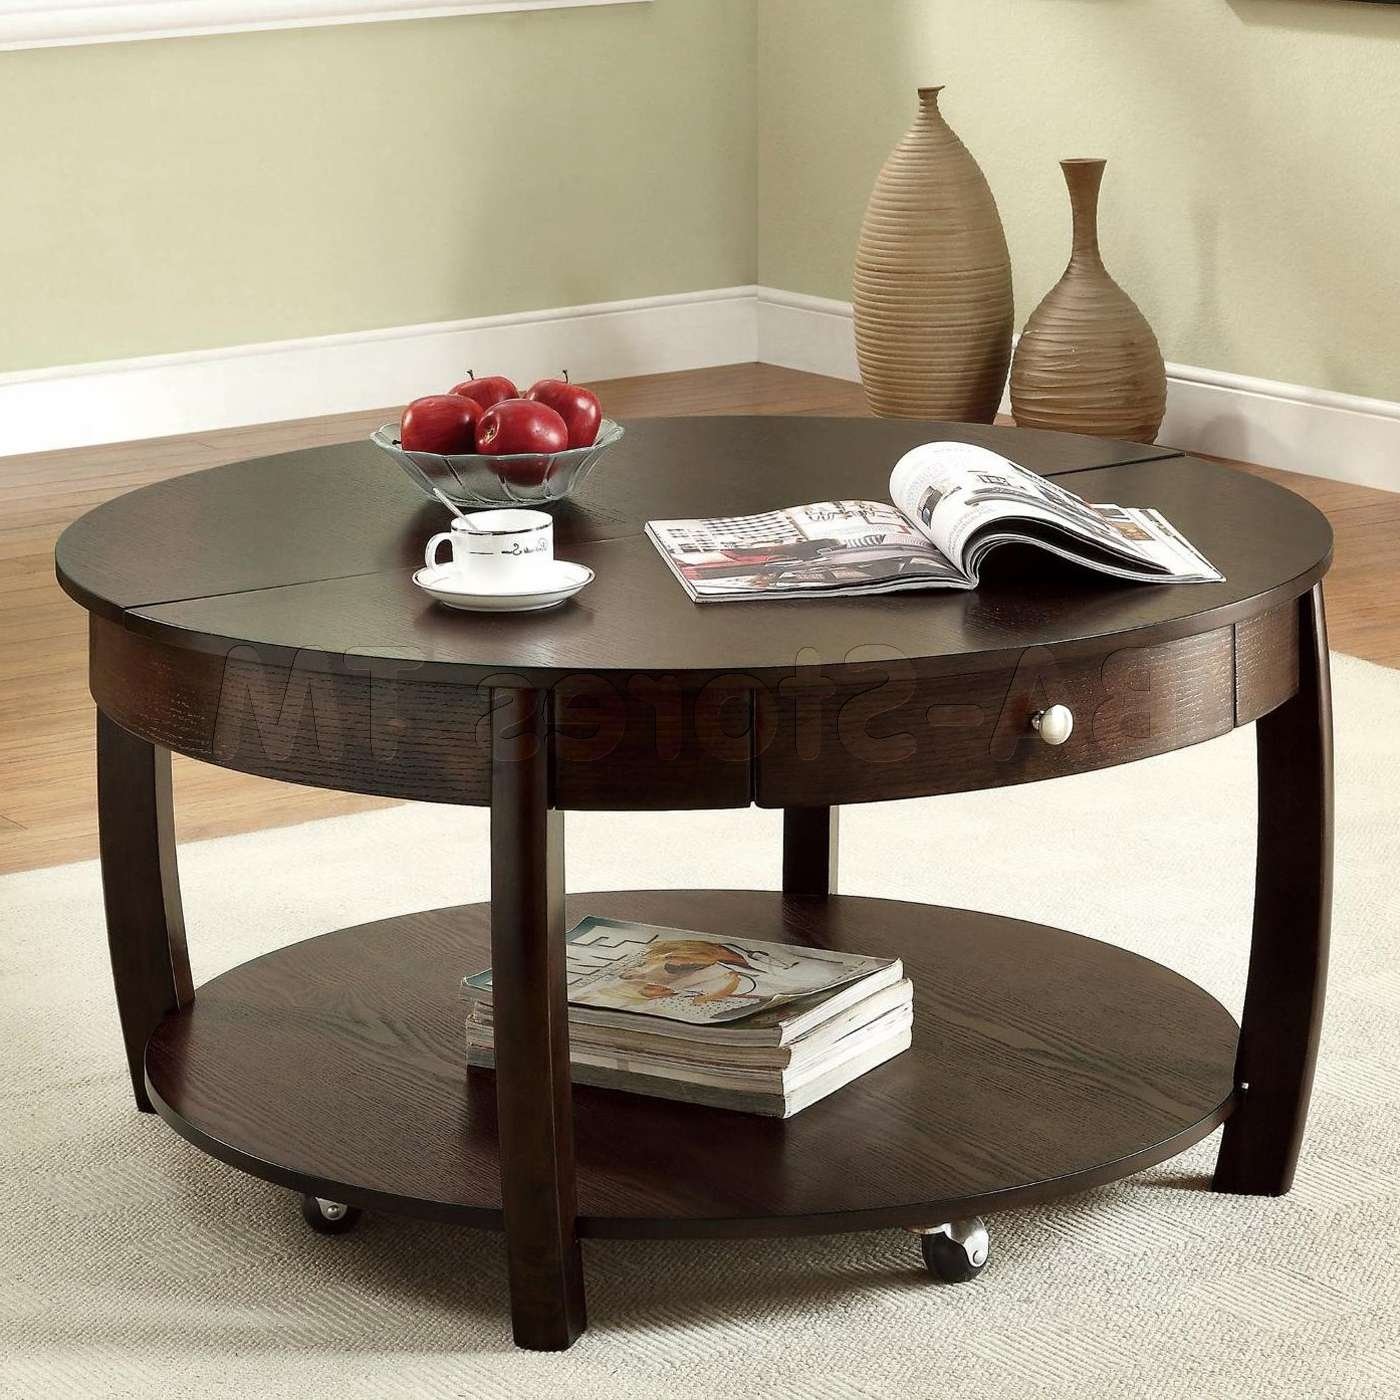 Coffee Tables Ideas: Unique Small Coffee Table With Storage Small For Best And Newest Circle Coffee Tables (View 8 of 20)